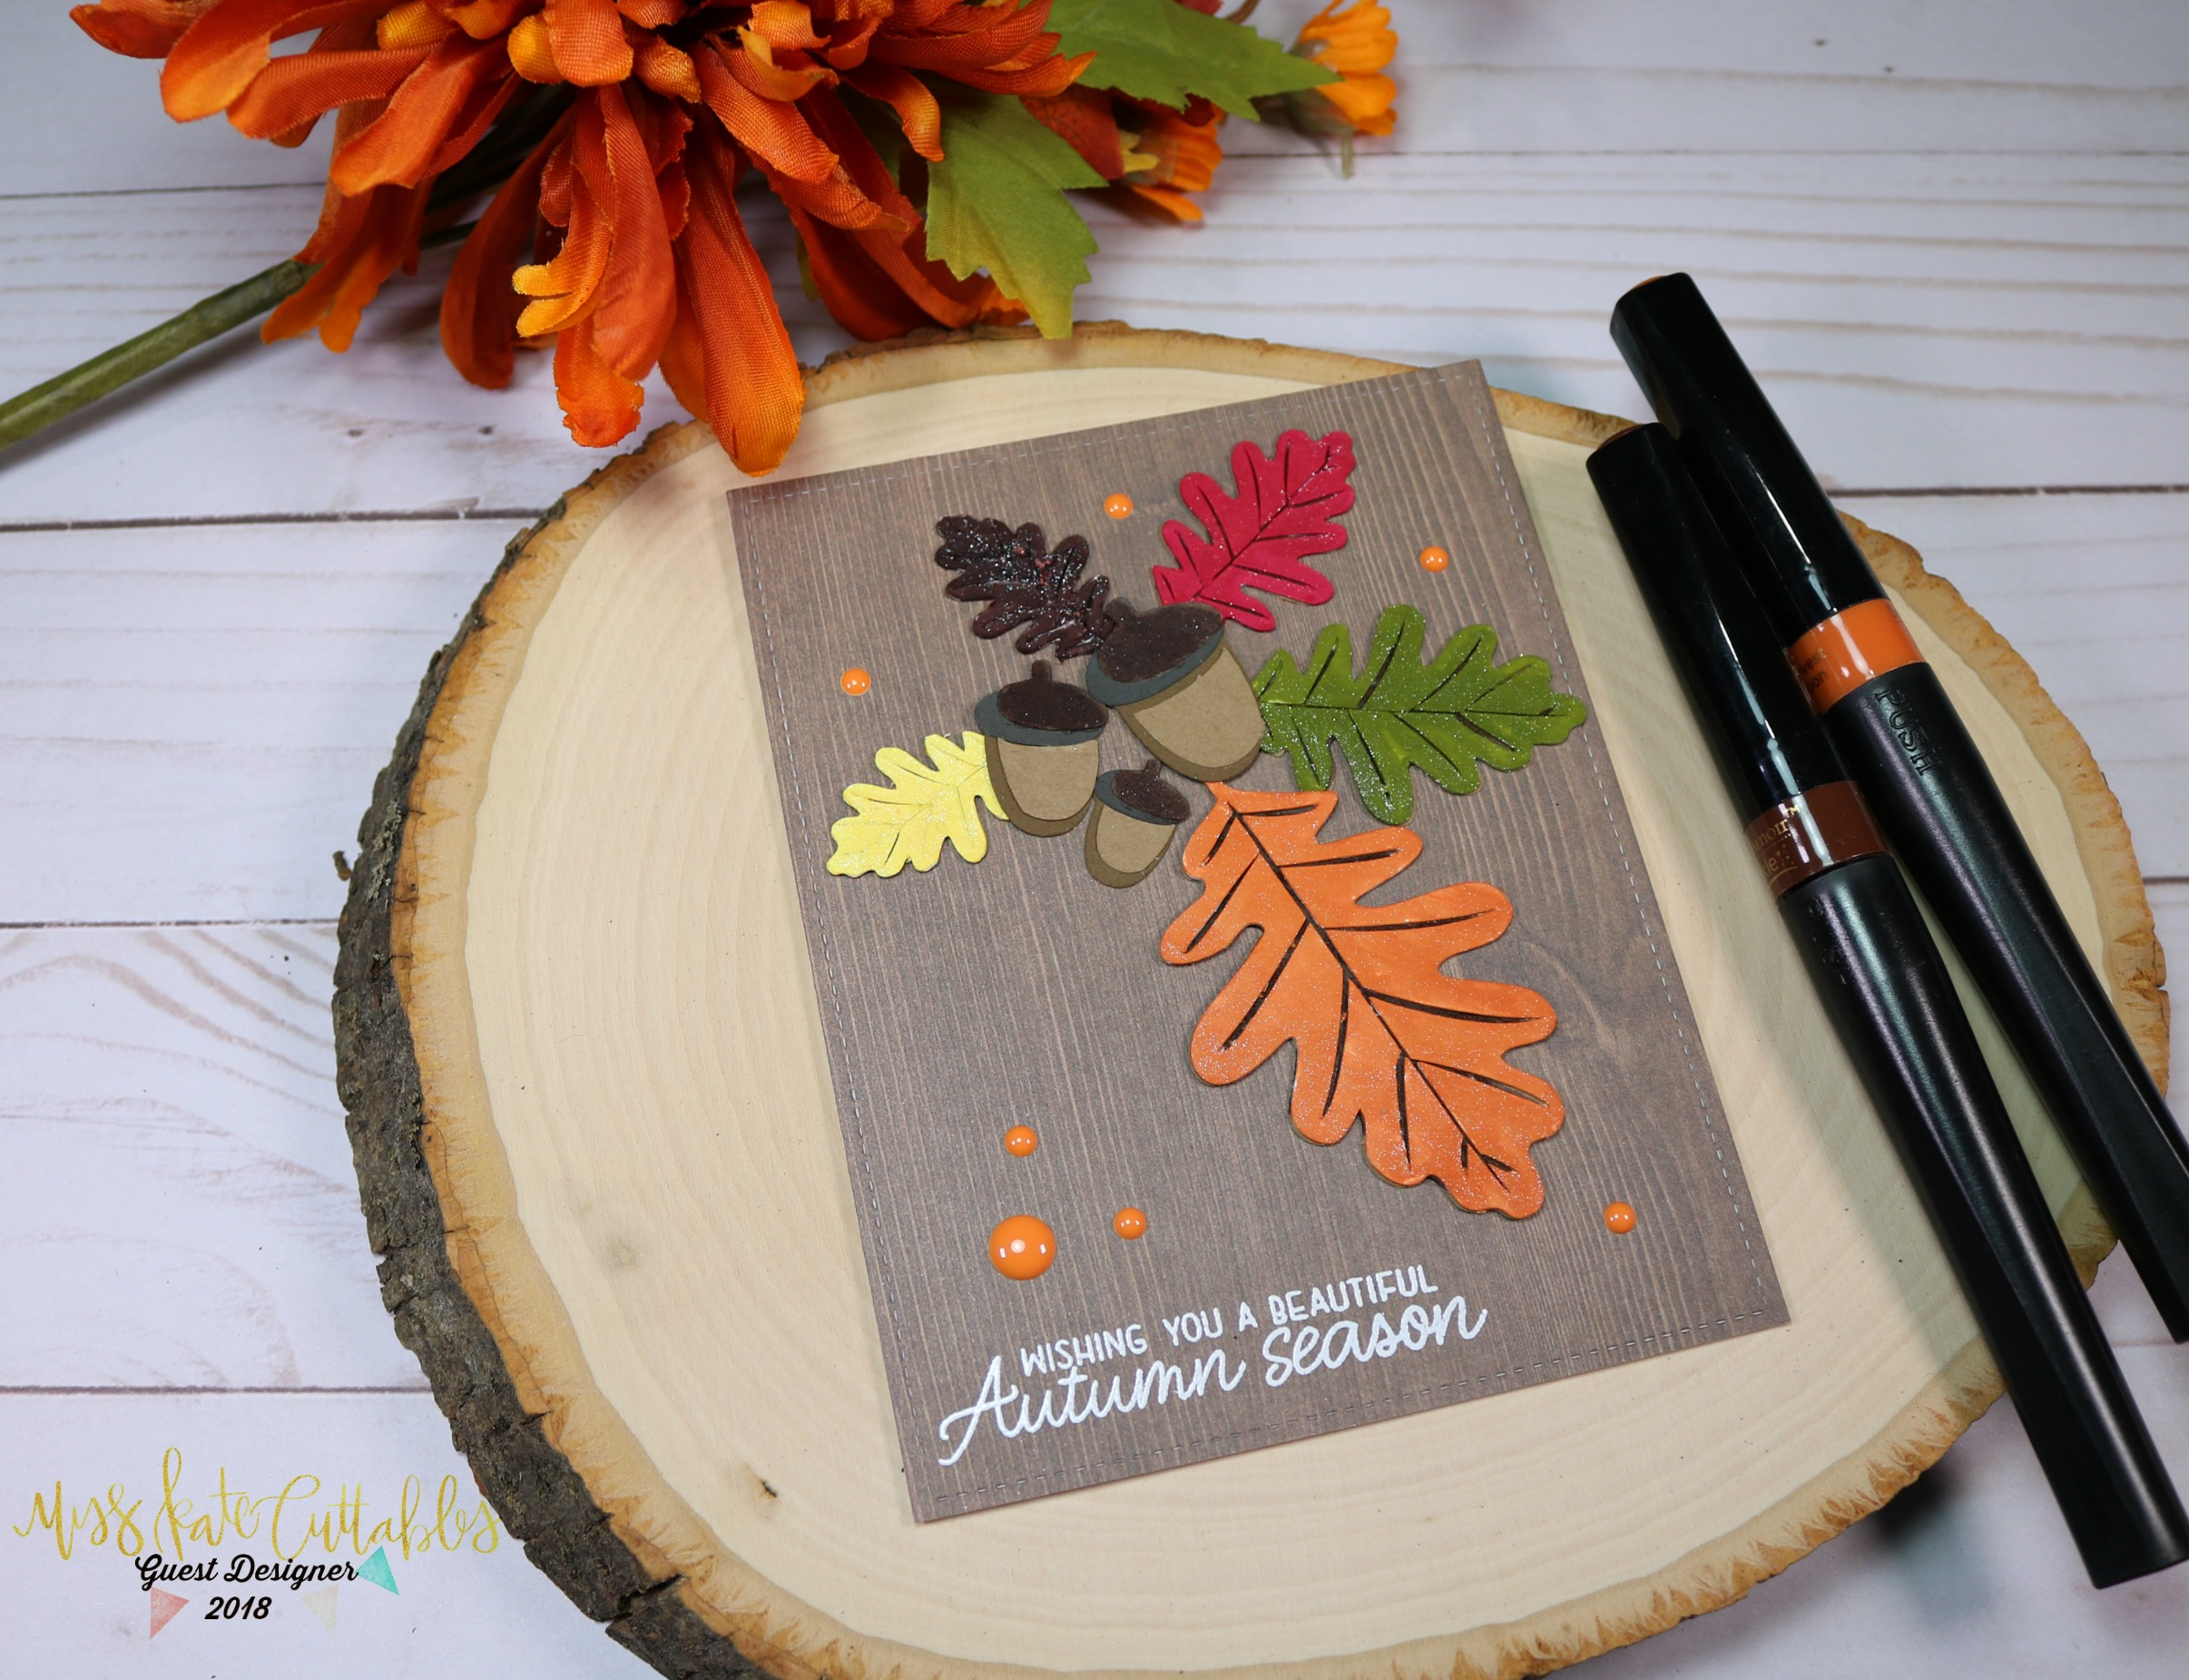 Miss Kate Cuttables SVG file Oak Leaves colored with Spectrum Noir Sparkle Marker Fall inspired card created with Cricut Explorer.